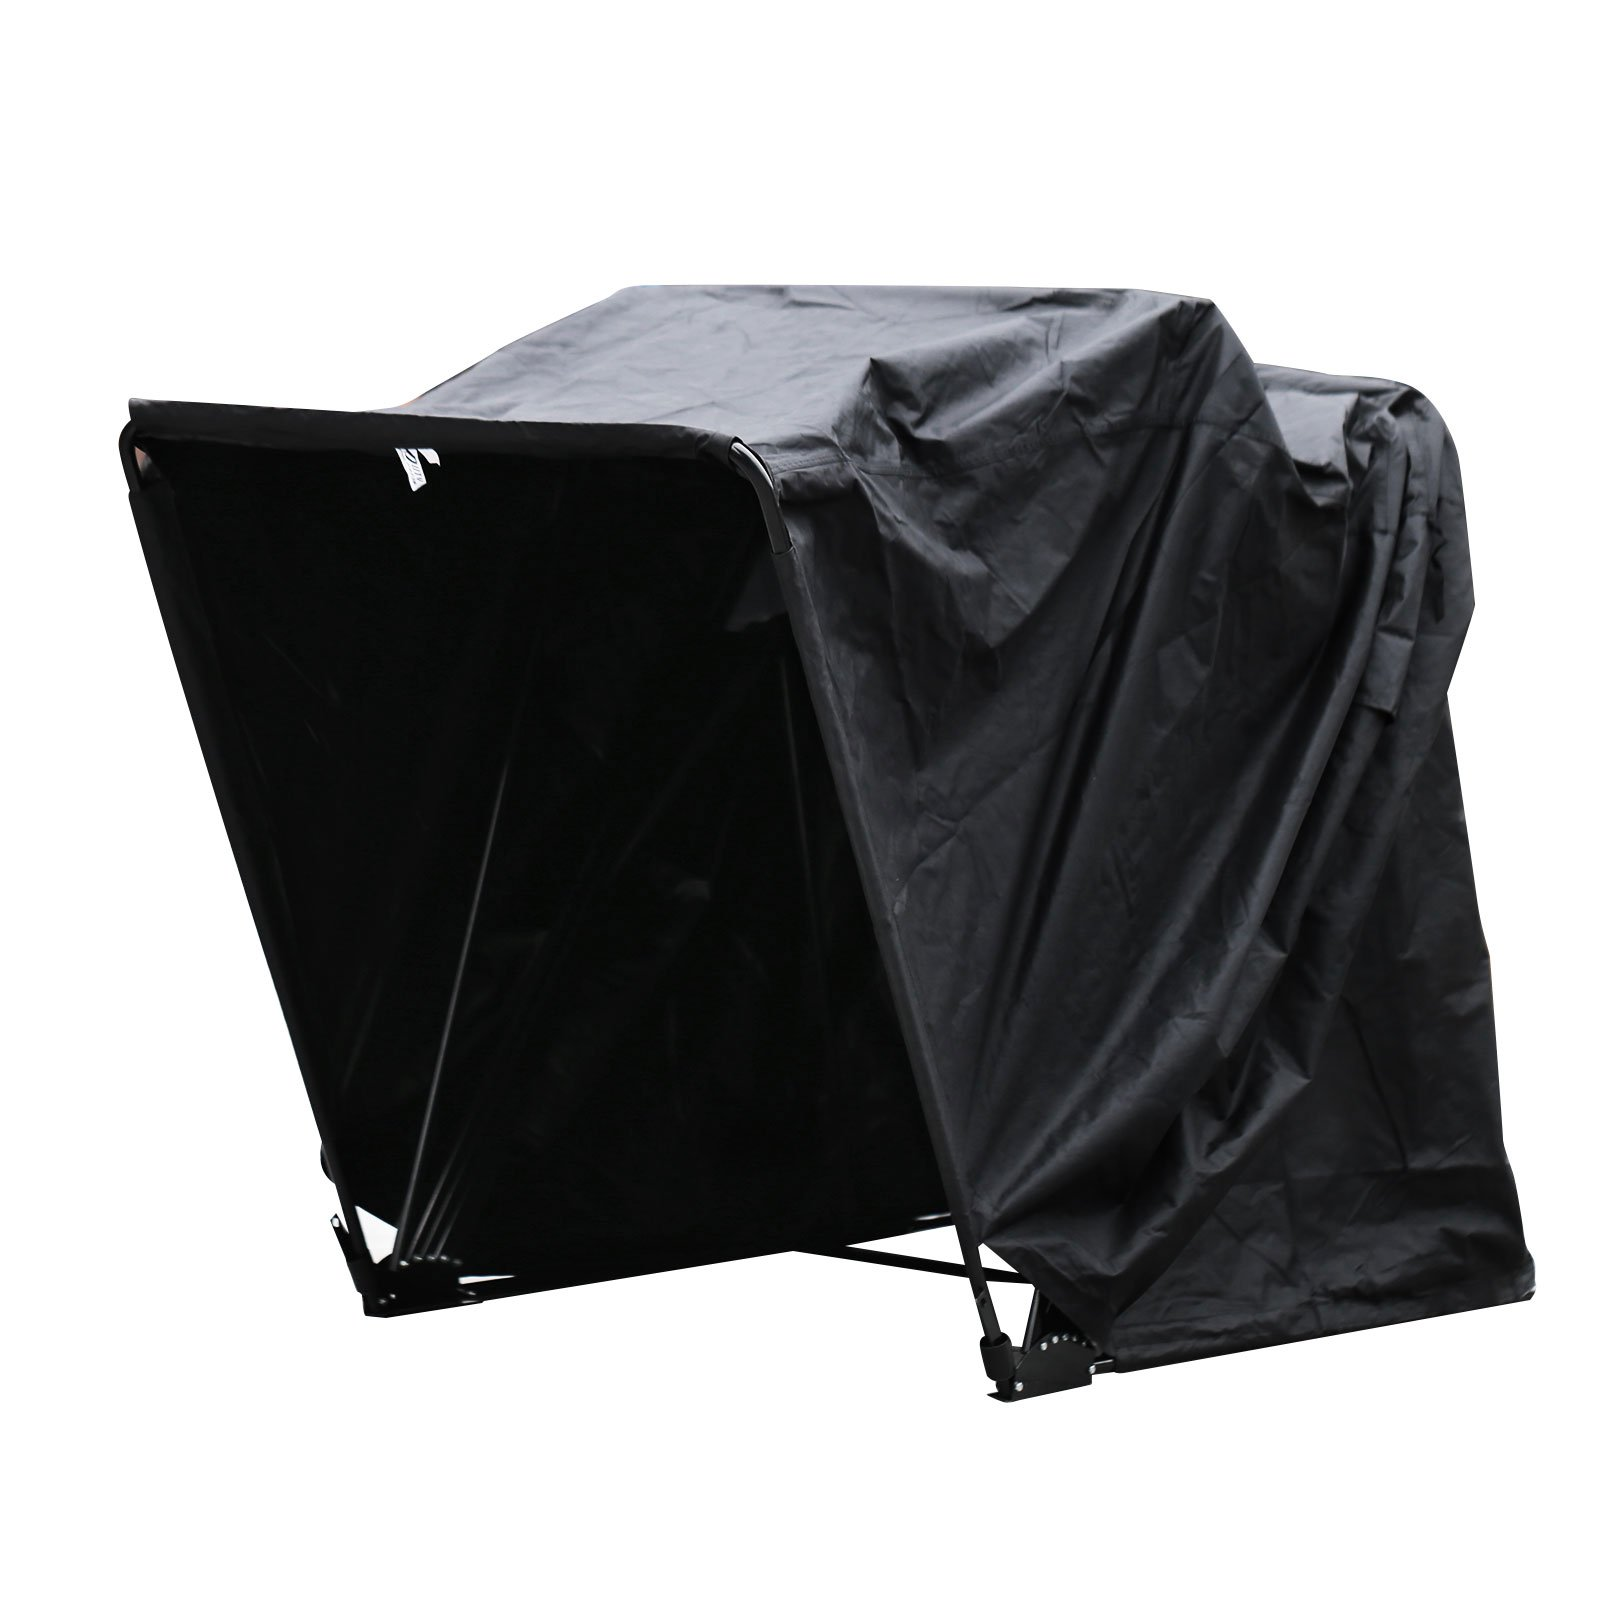 Mophorn Motorcycle Shelter Shed Strong Frame Motorbike Garage Waterproof 106.5''X41.5''X61'' Motorbike Cover Tent Scooter Shelter